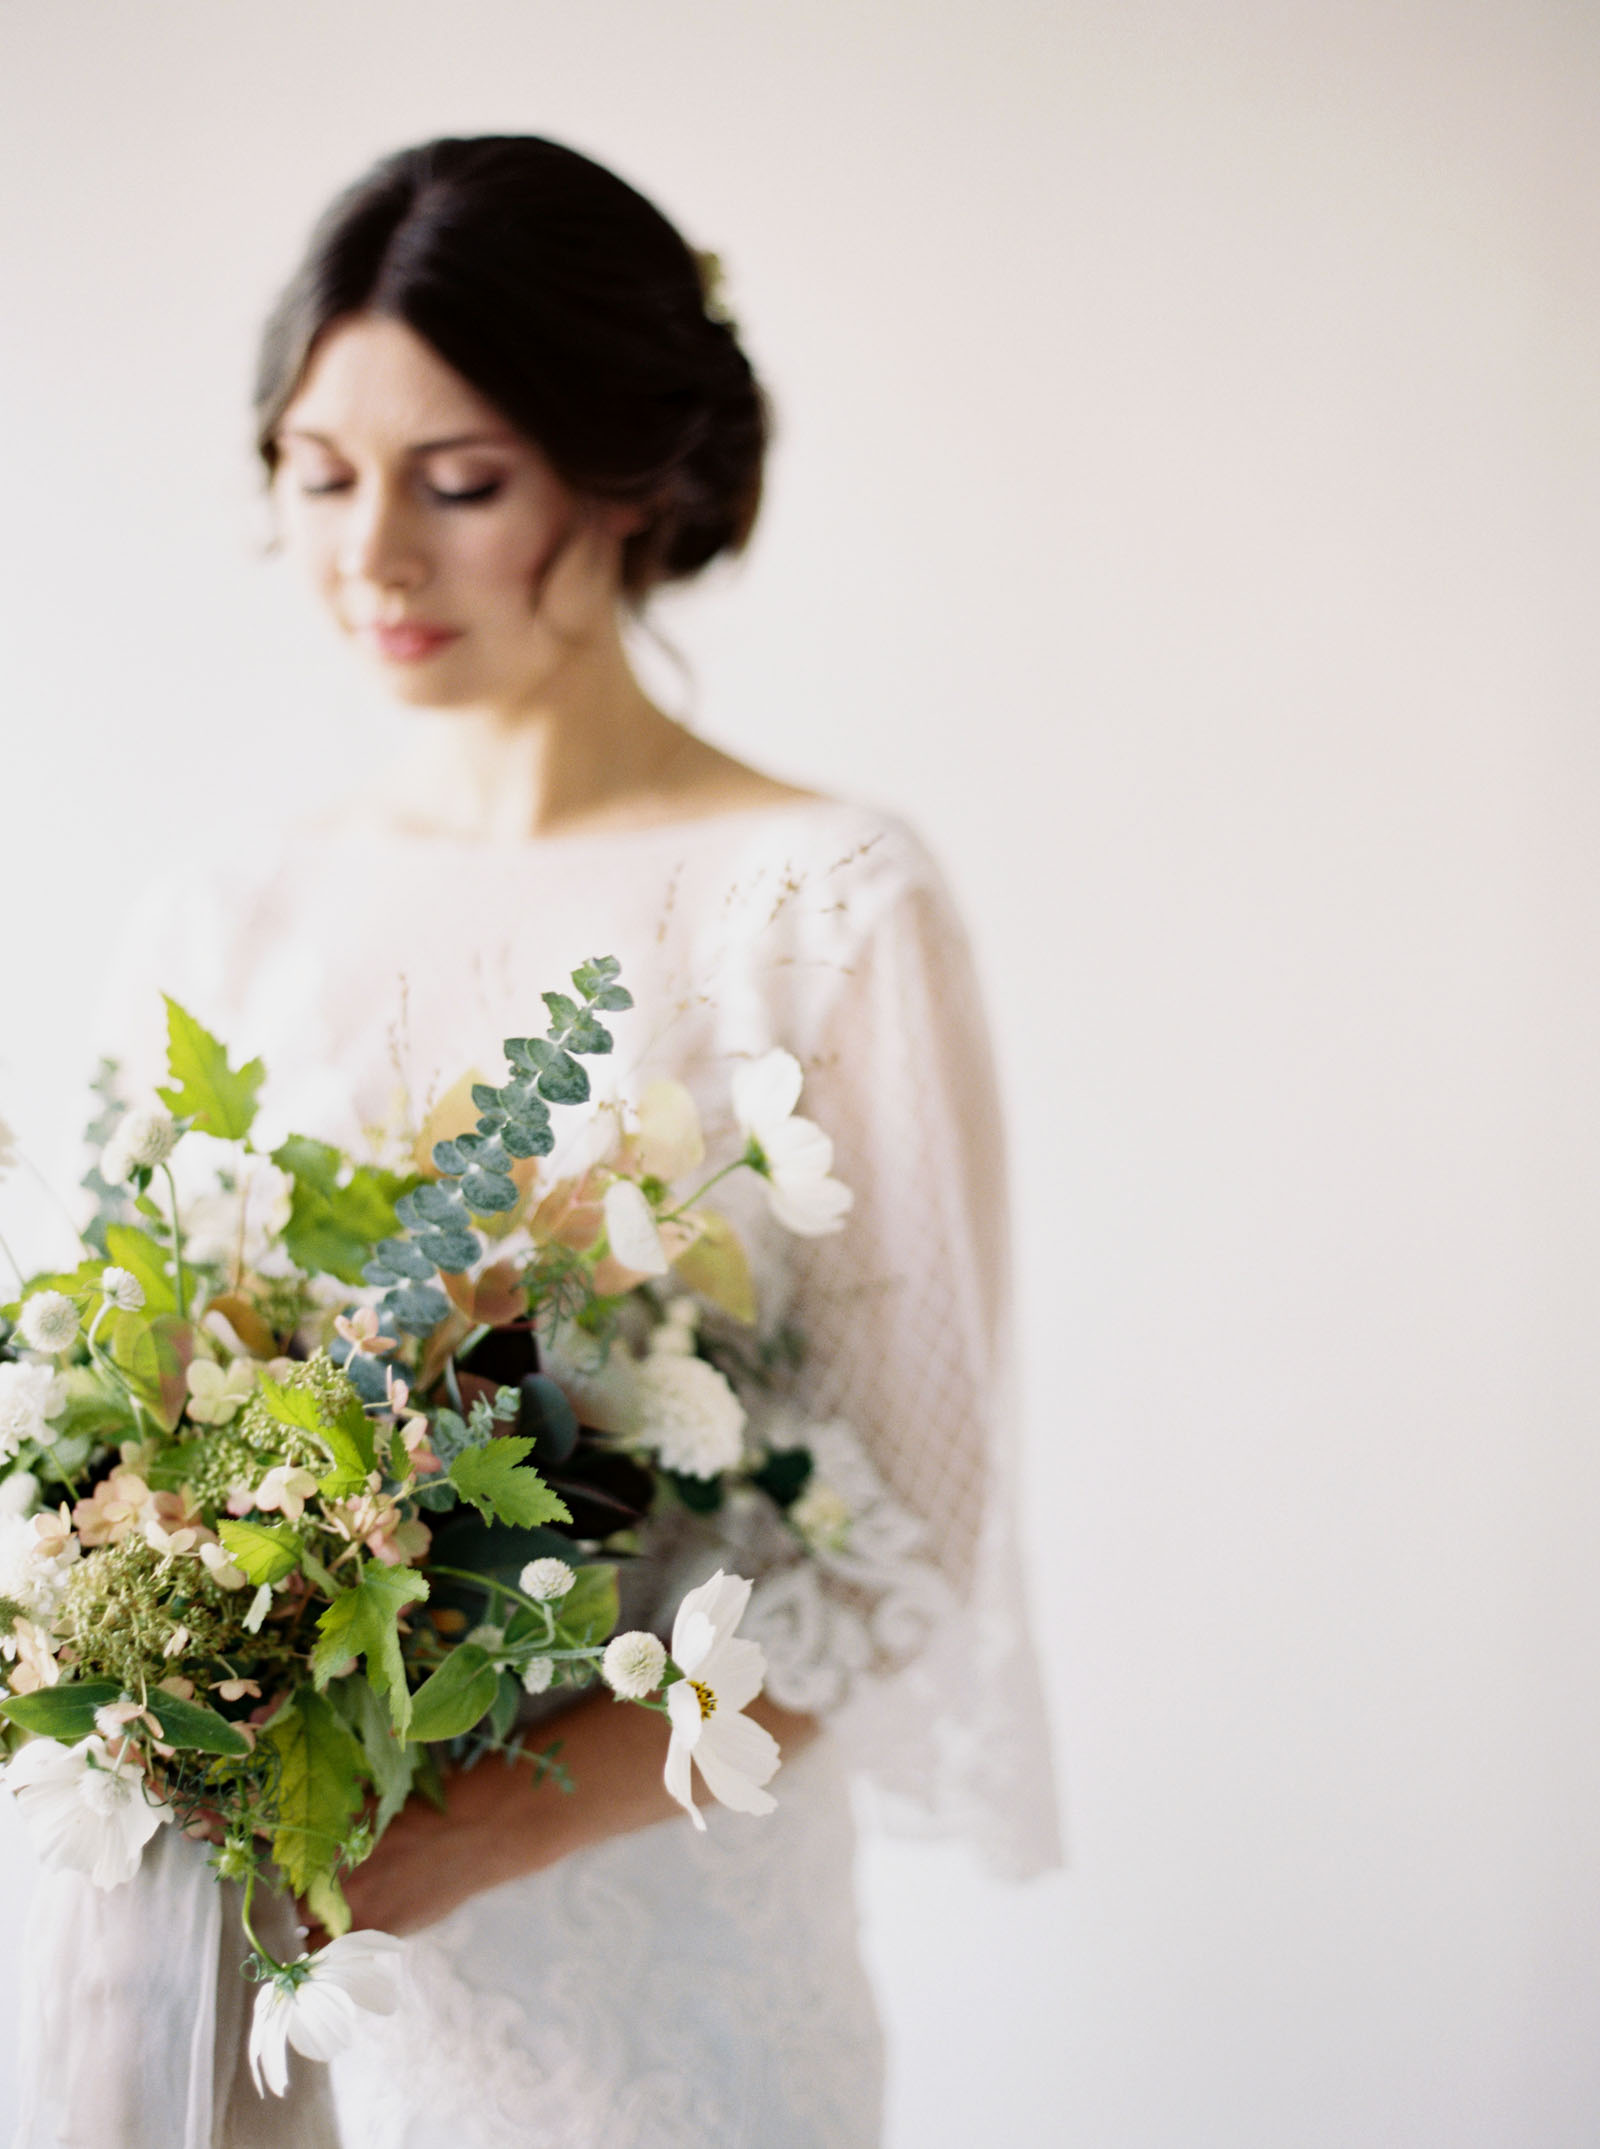 Garden style bridal flowers captured by Washington wedding photographer Anna Peters